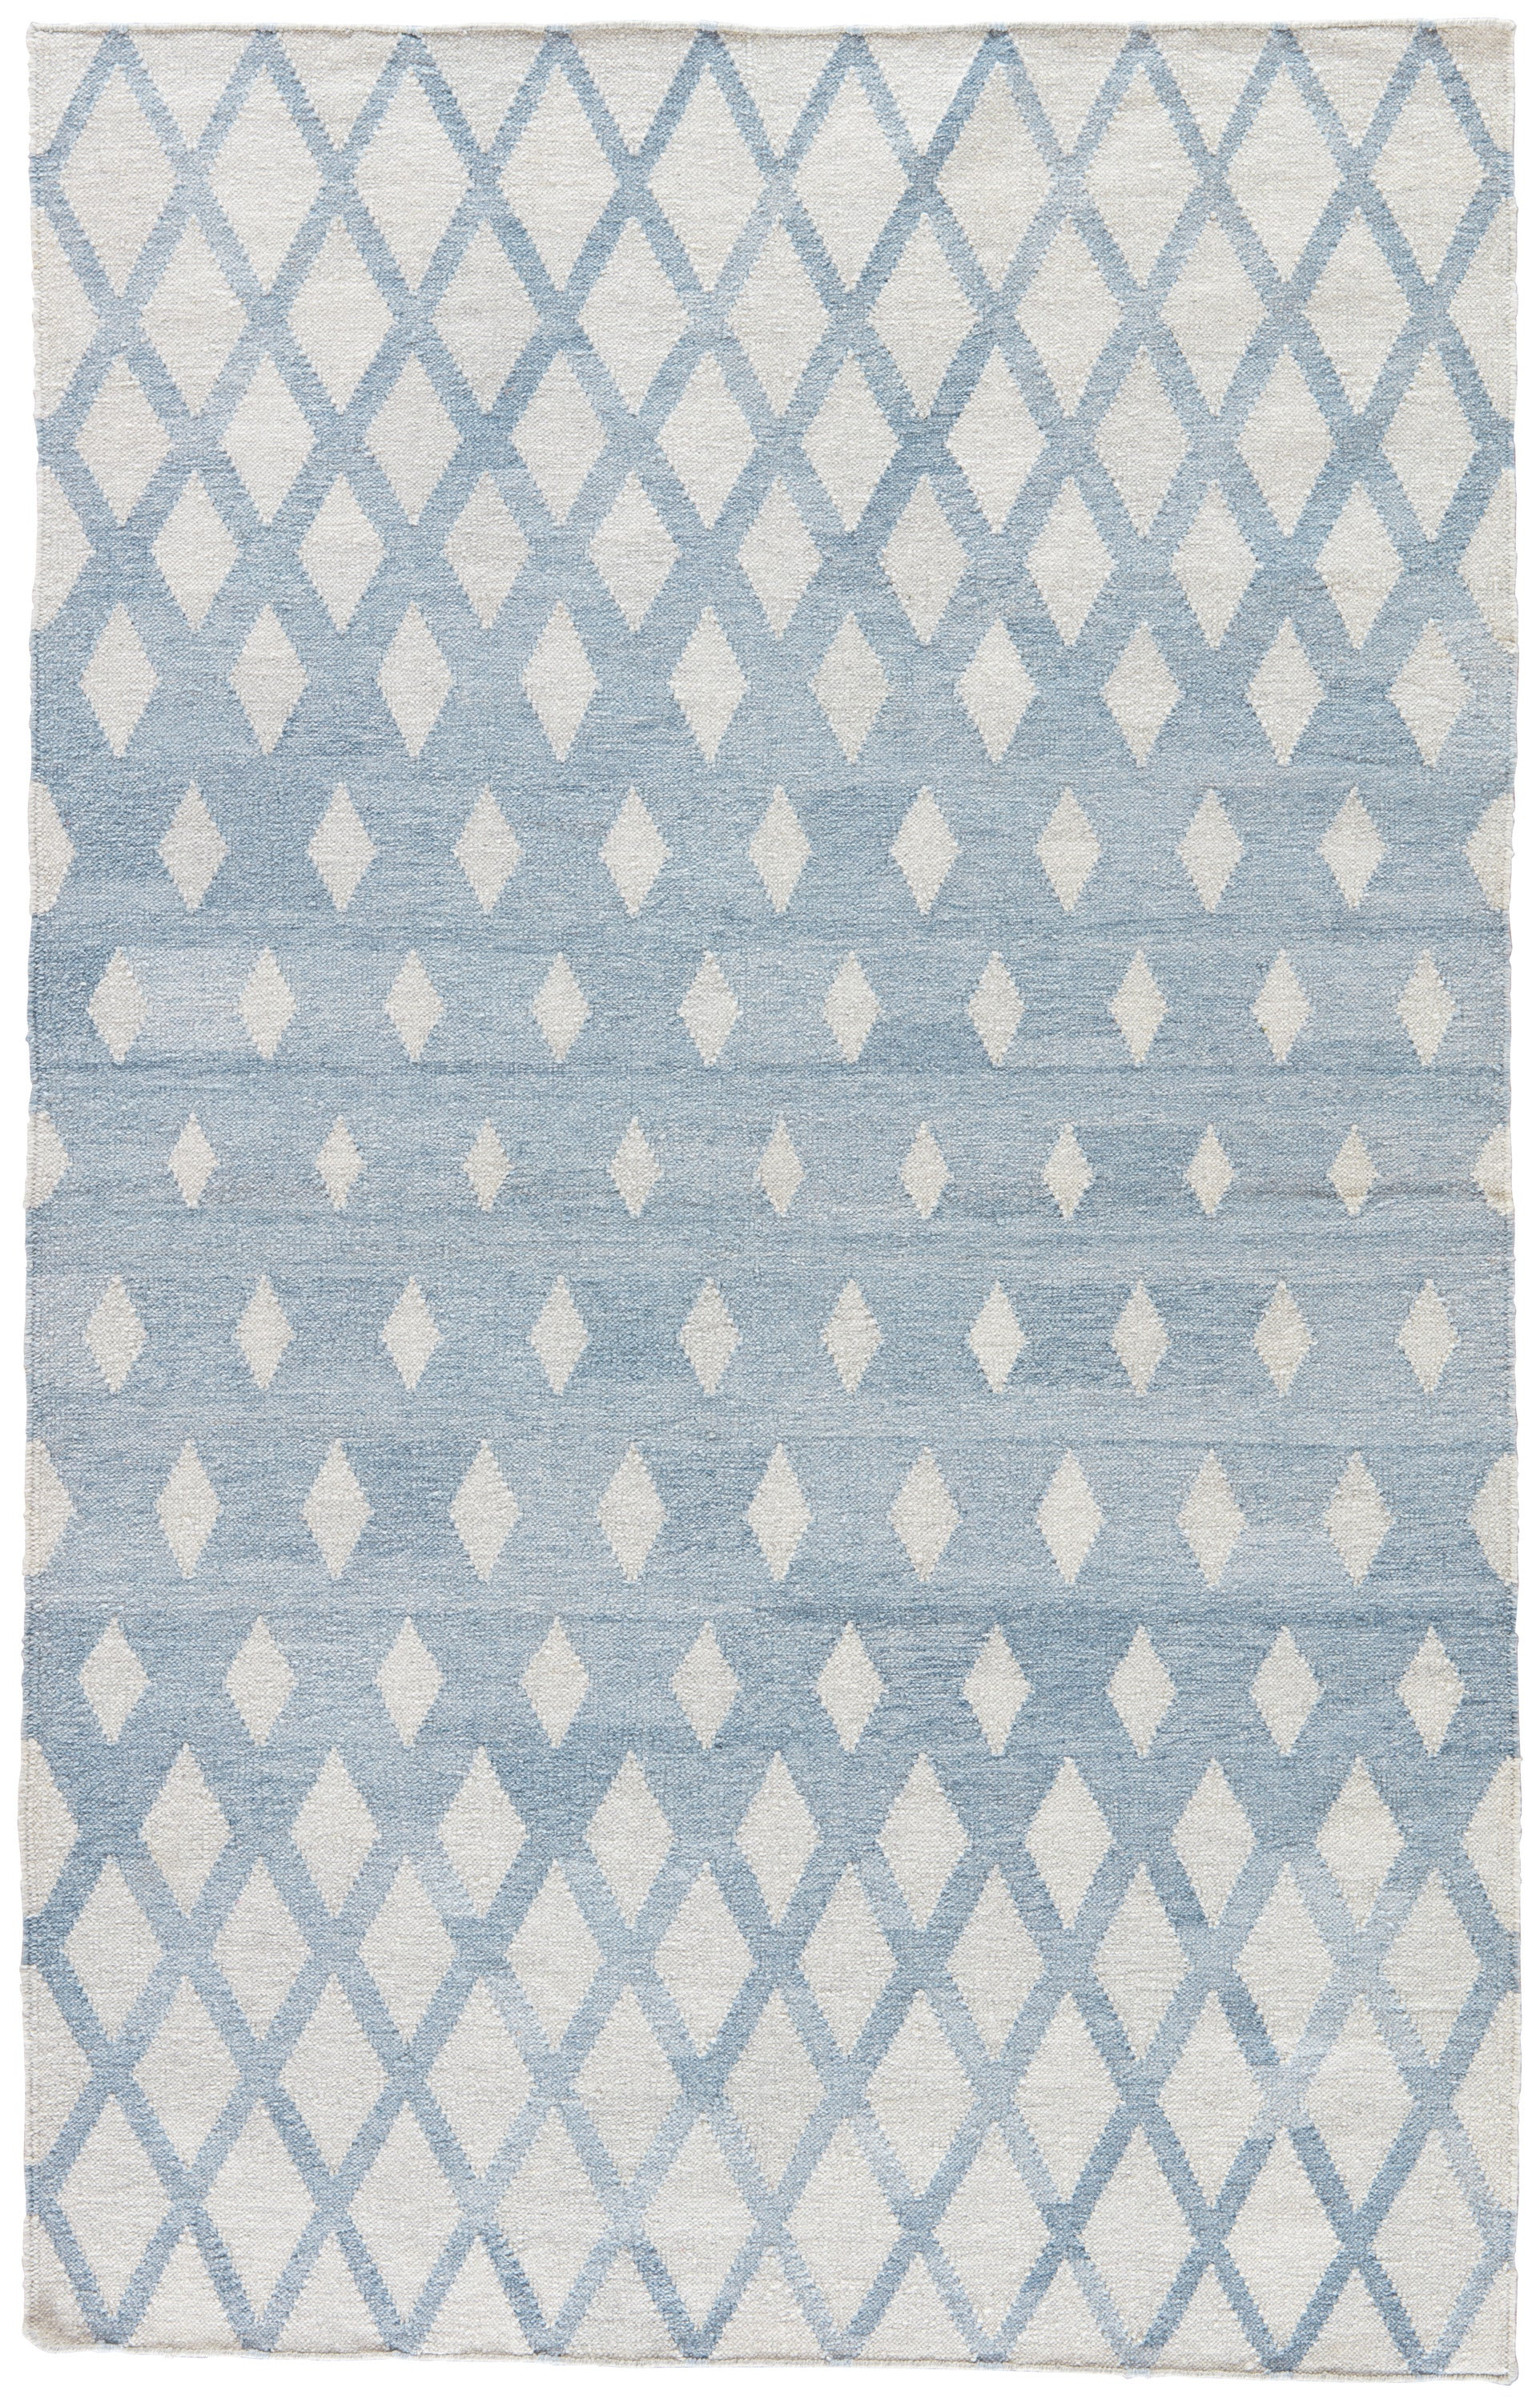 Rectangle Blue Geometric Dhurrie Synthetics Contemporary recommended for Bedroom, Bathroom, Outdoor, Dining Room, Office, Hallway, Living Room